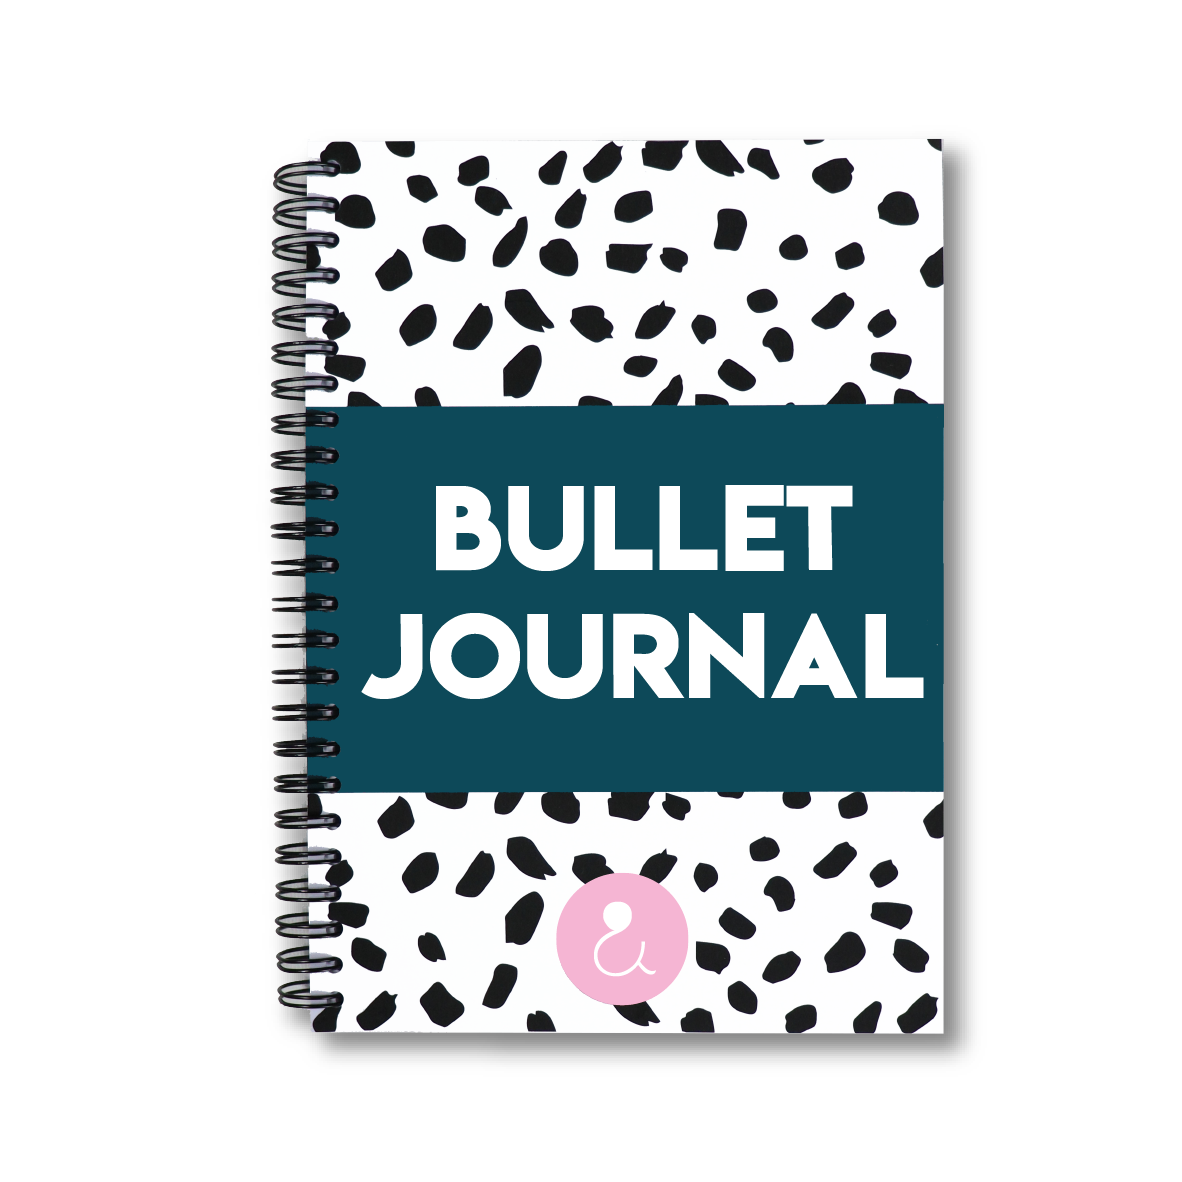 Bullet journal | donkerblauw